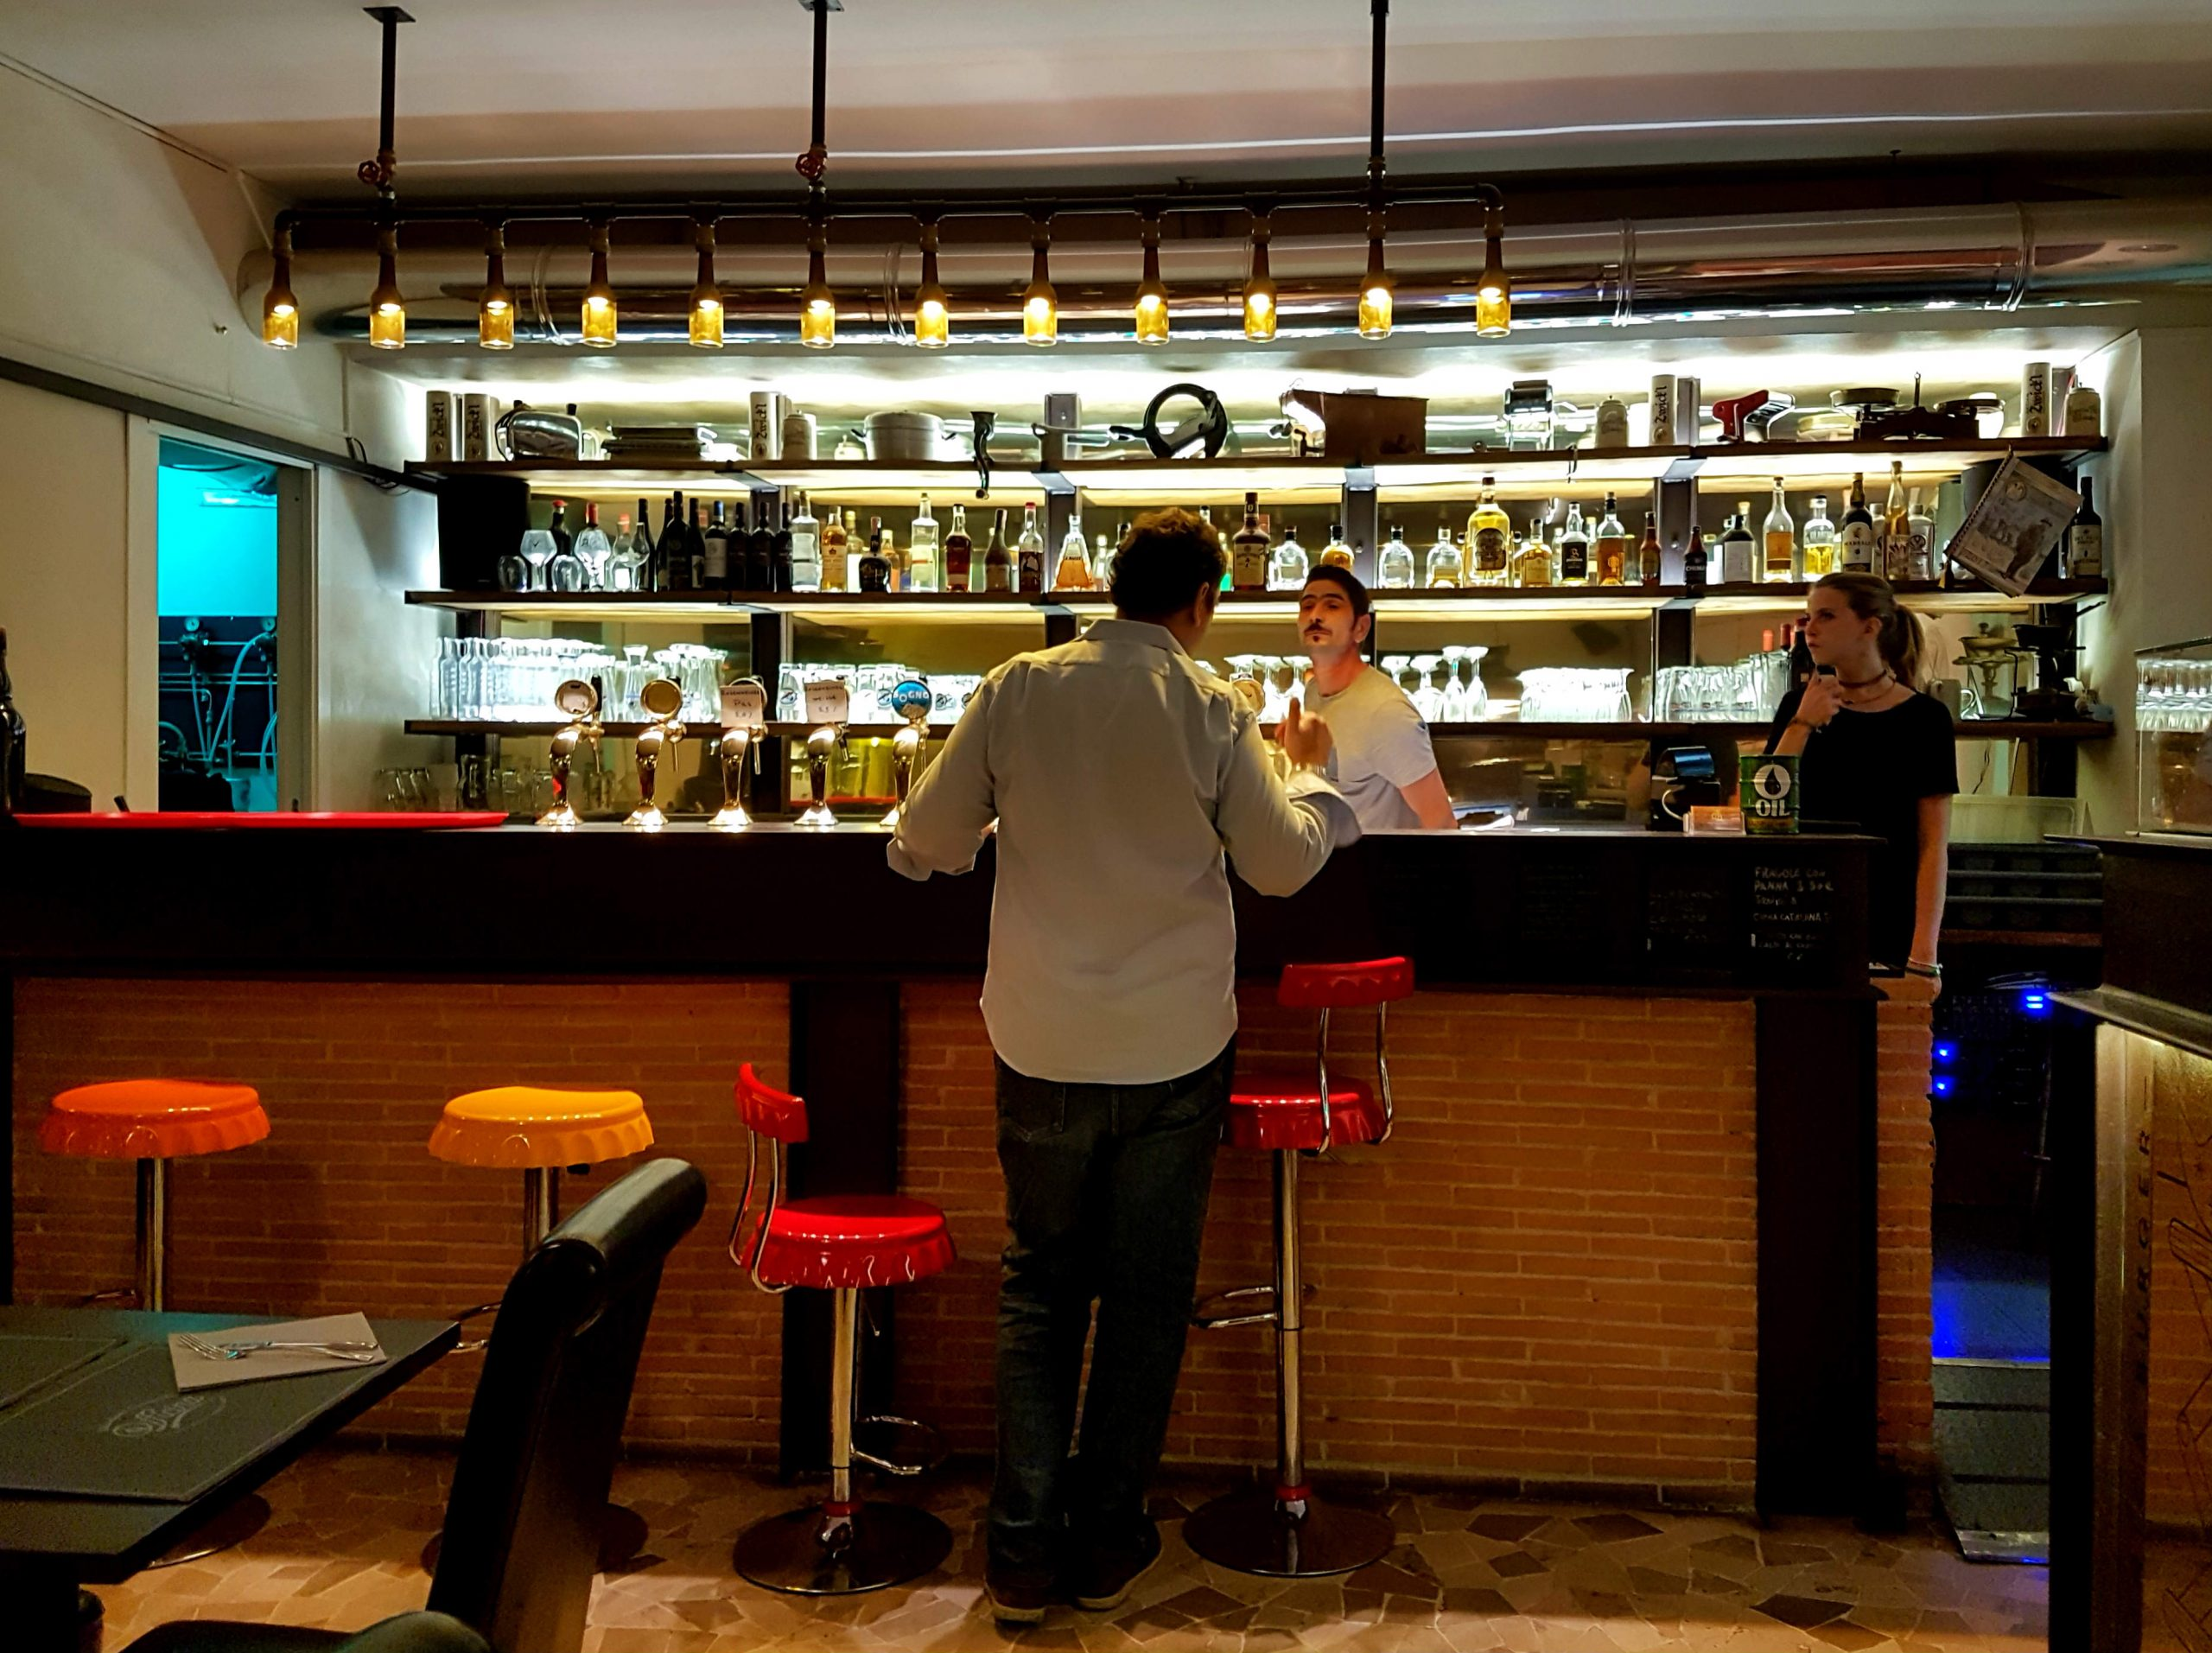 Officina - pizza and burger is a recently refurbished pizzeria and craft-beer bar in Rome which is laying claim to serving one of the best pizzas in Rome.